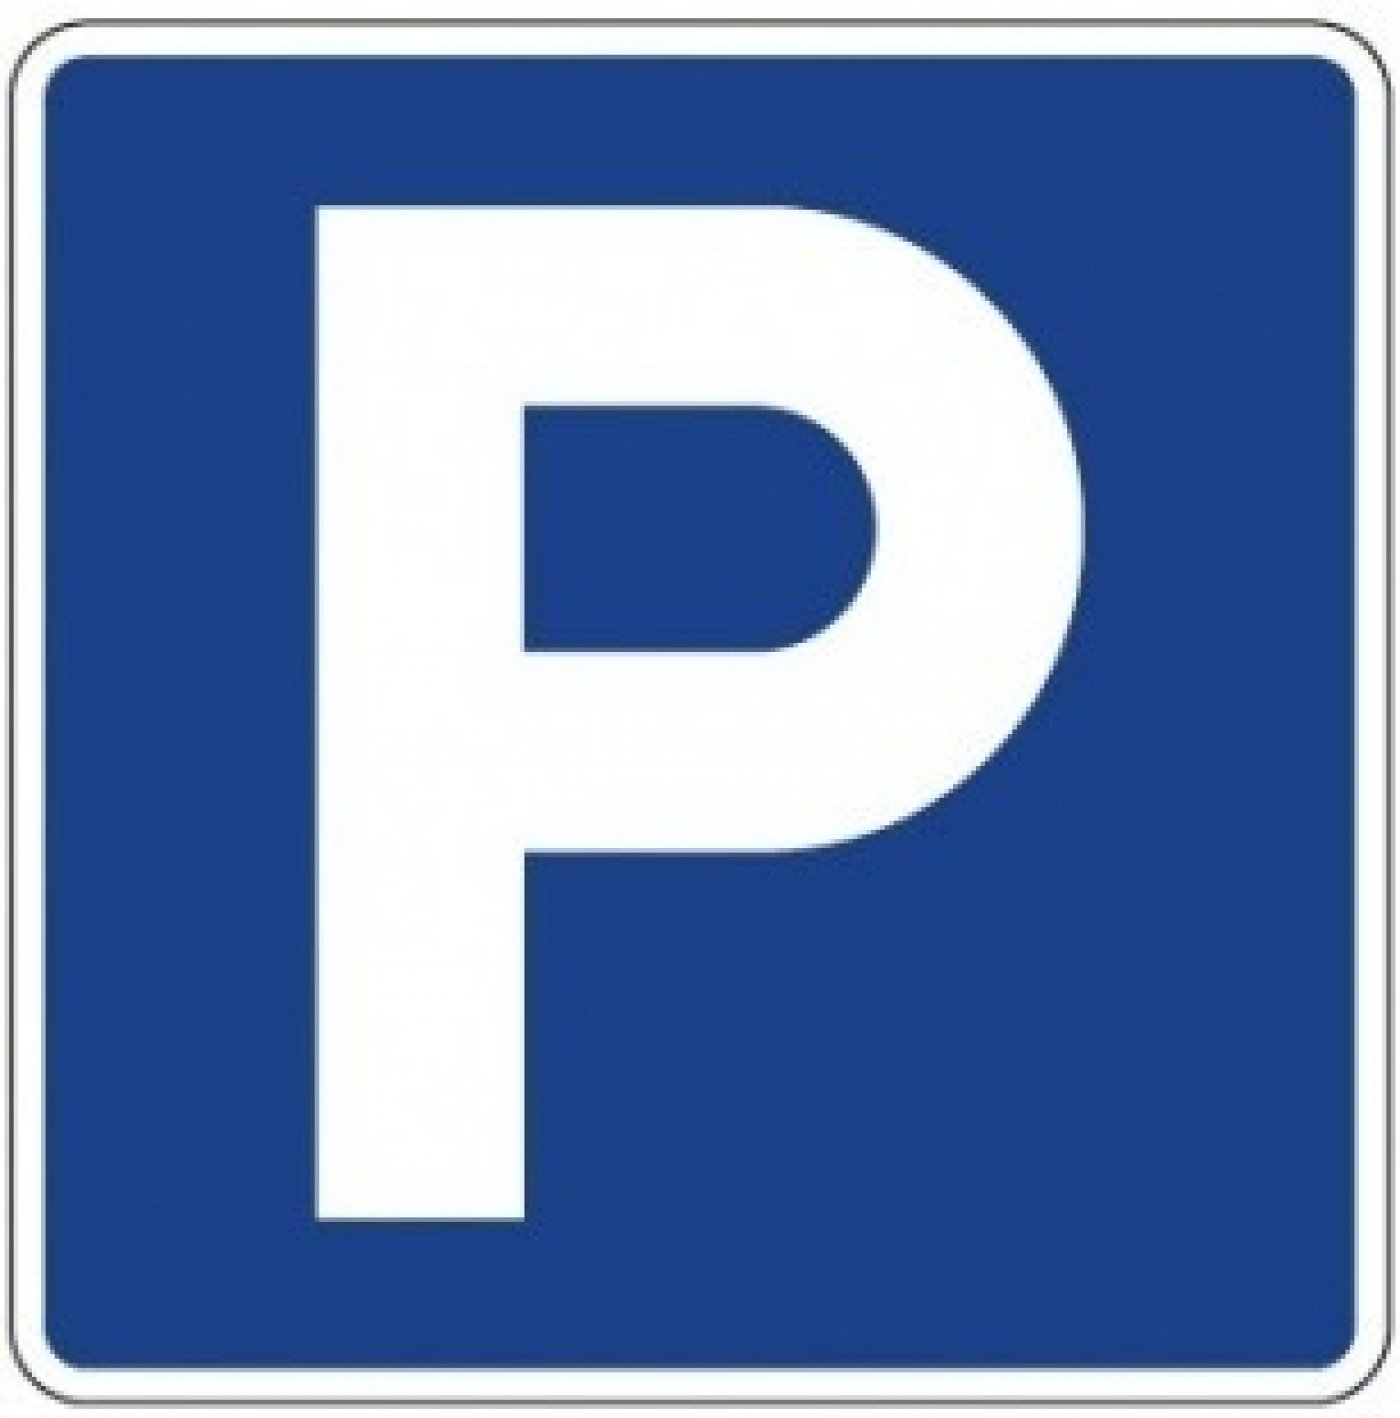 Rent Car parking  Palma de mallorca ,son dameto. Se alquila plaza de parking en la calle dragonera